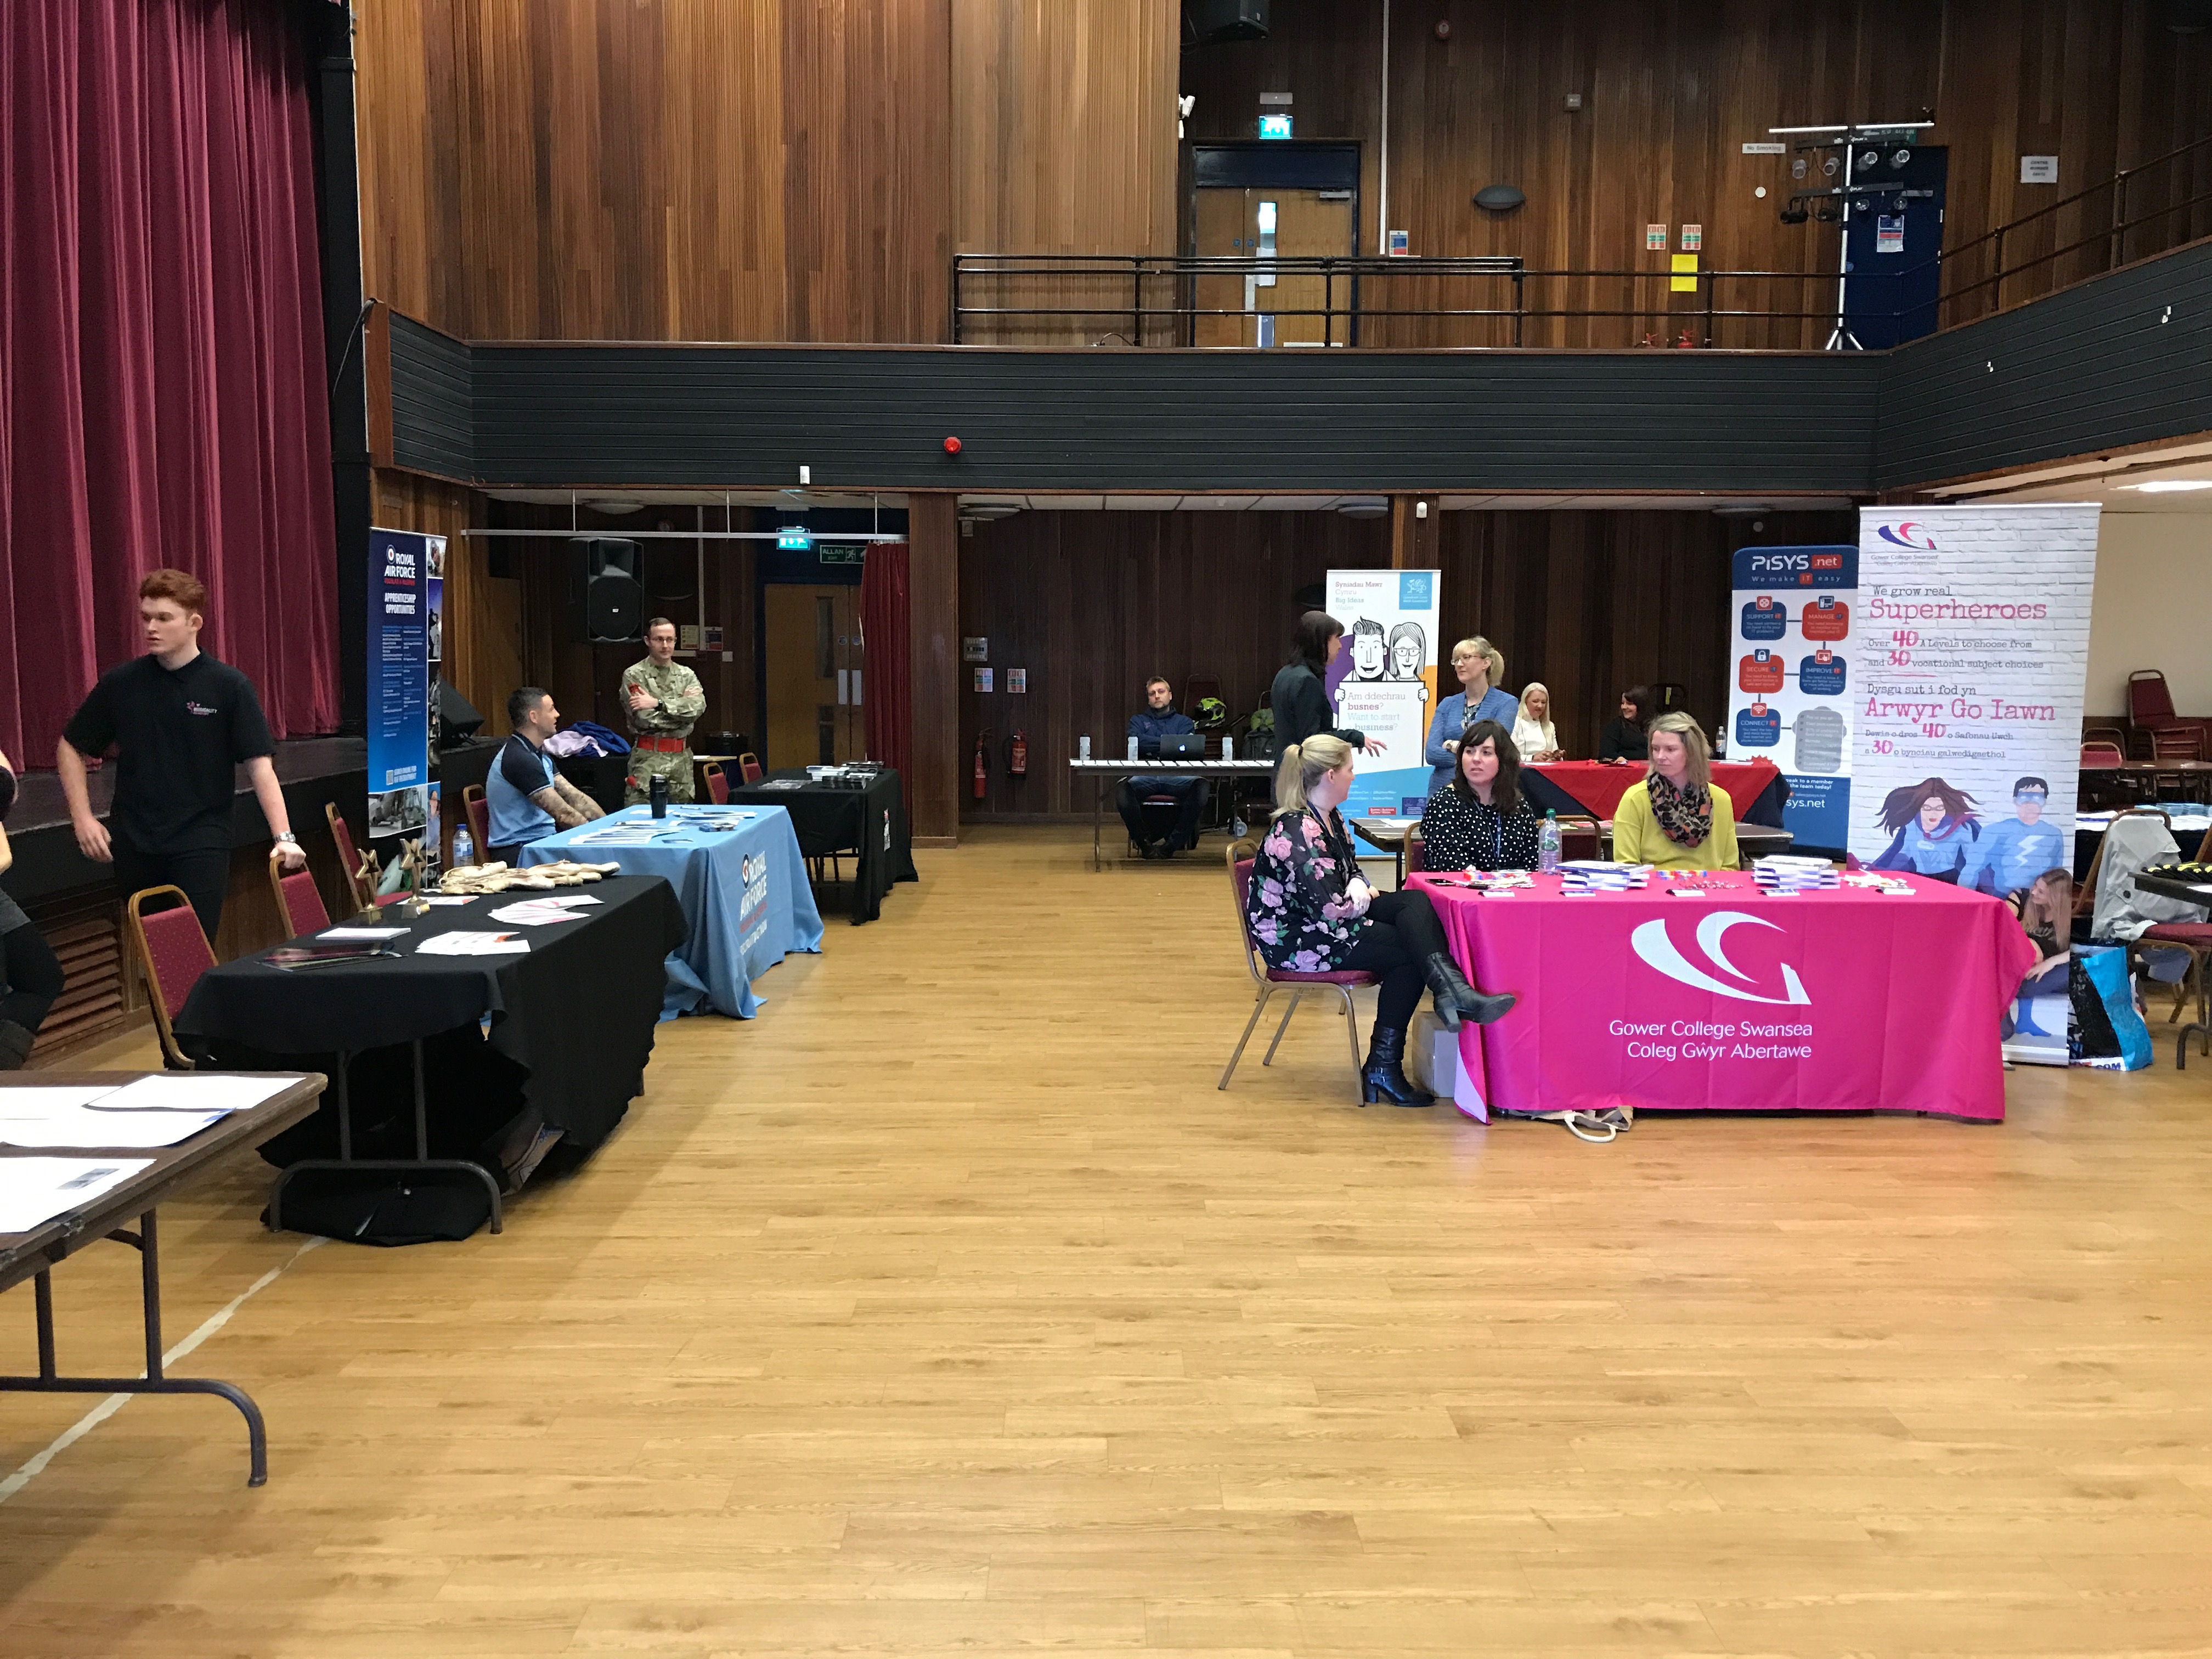 An image taken from Penyrheol Comprehensive School's Careers Fair. Image includes stalls from Gower College and other local businesses.